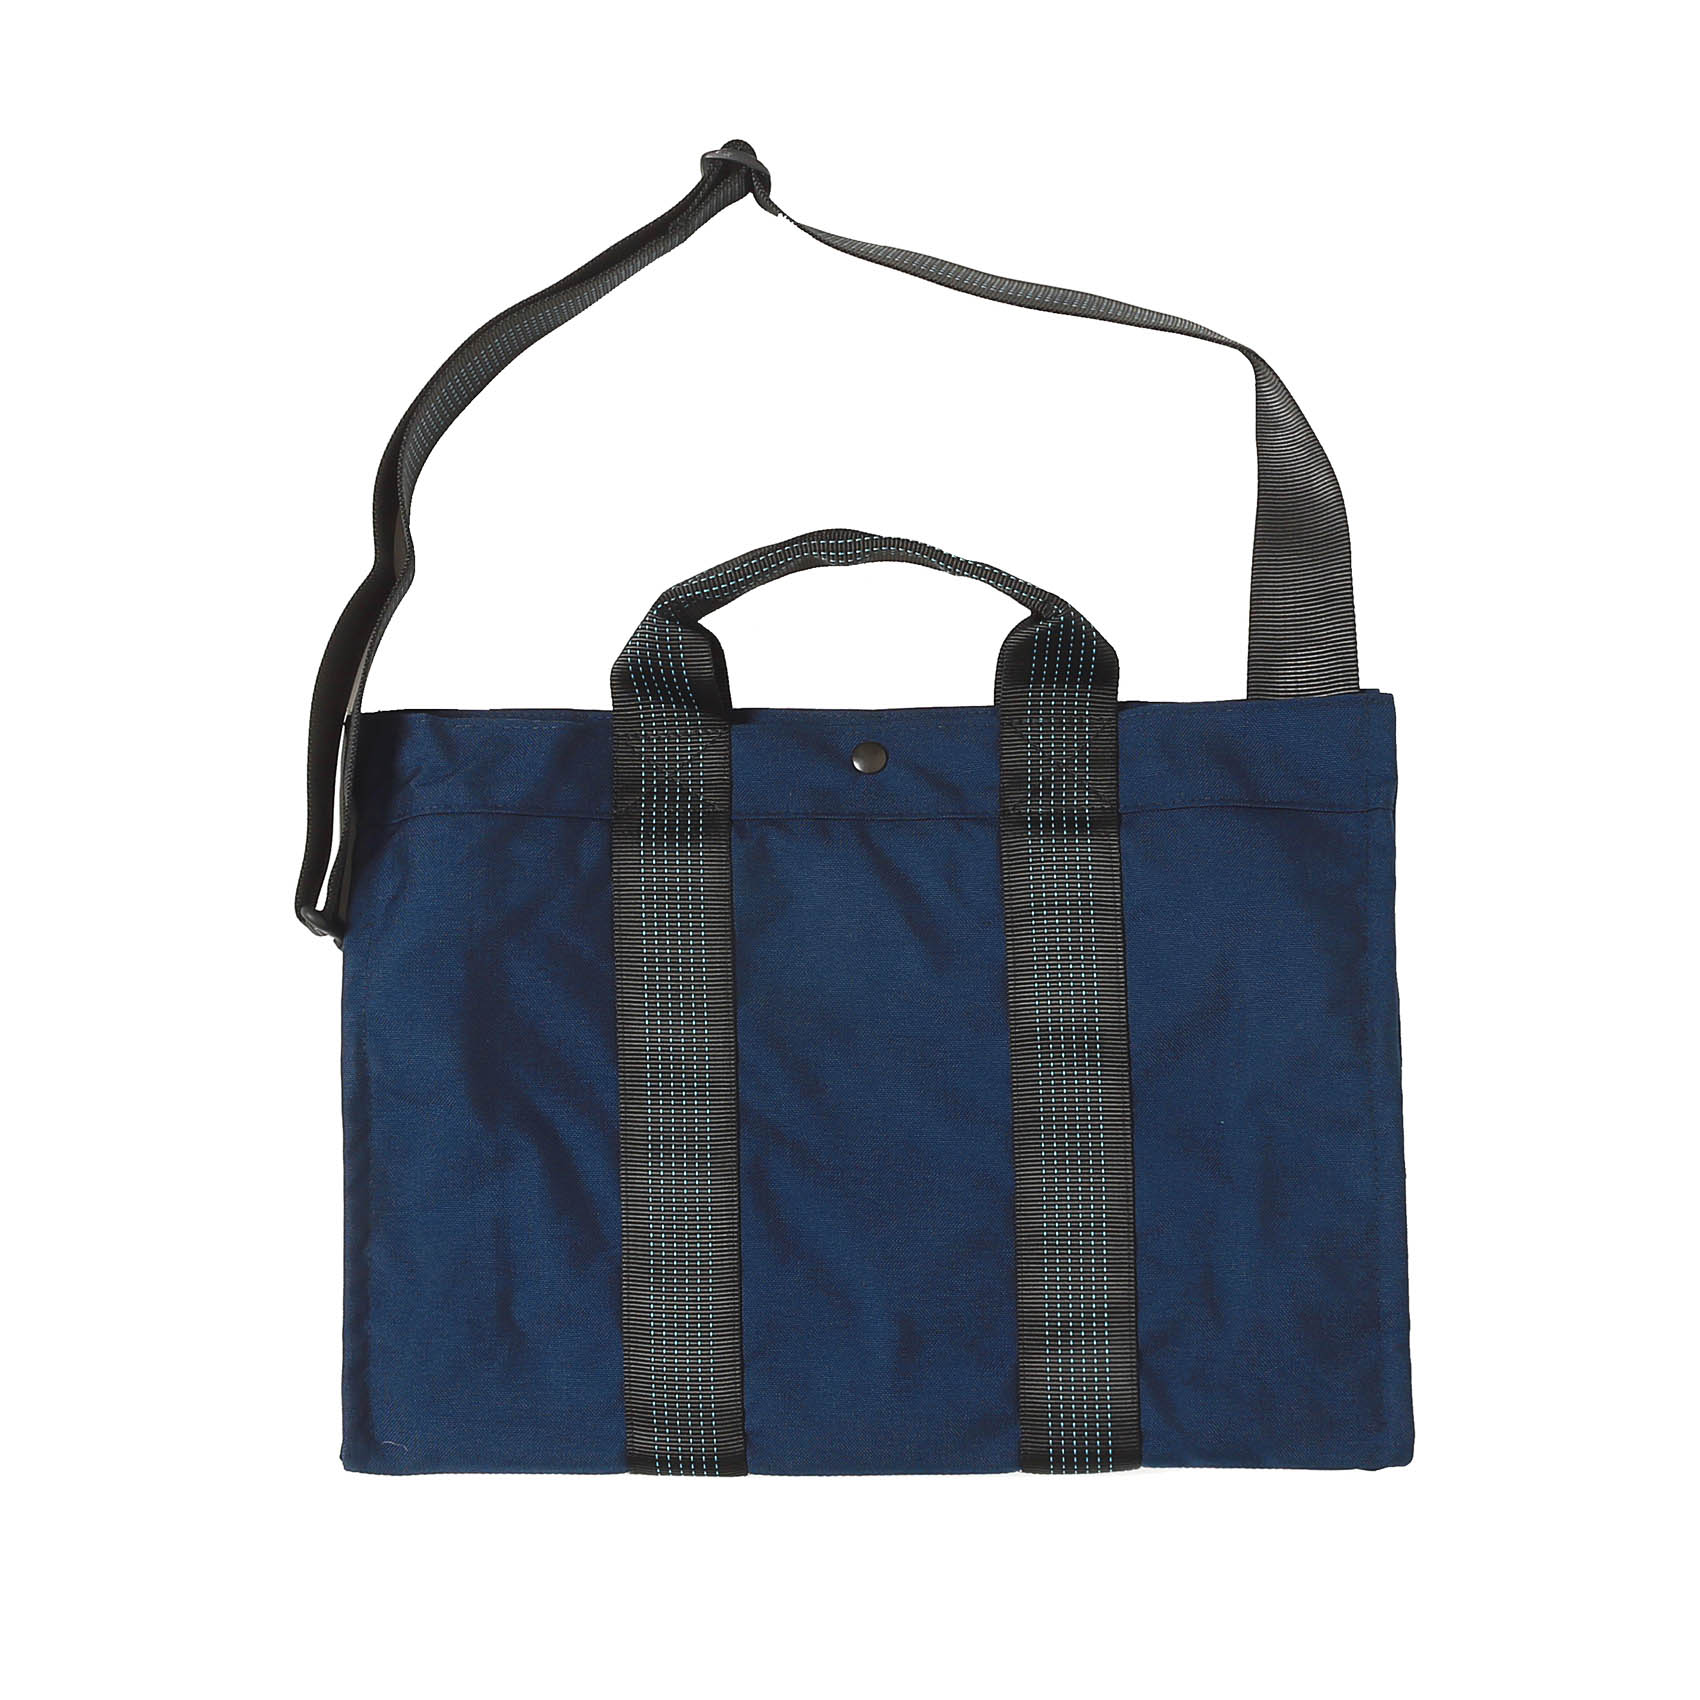 TRAVEL BAG W/SHOULDER STRAP - MID NIGHT